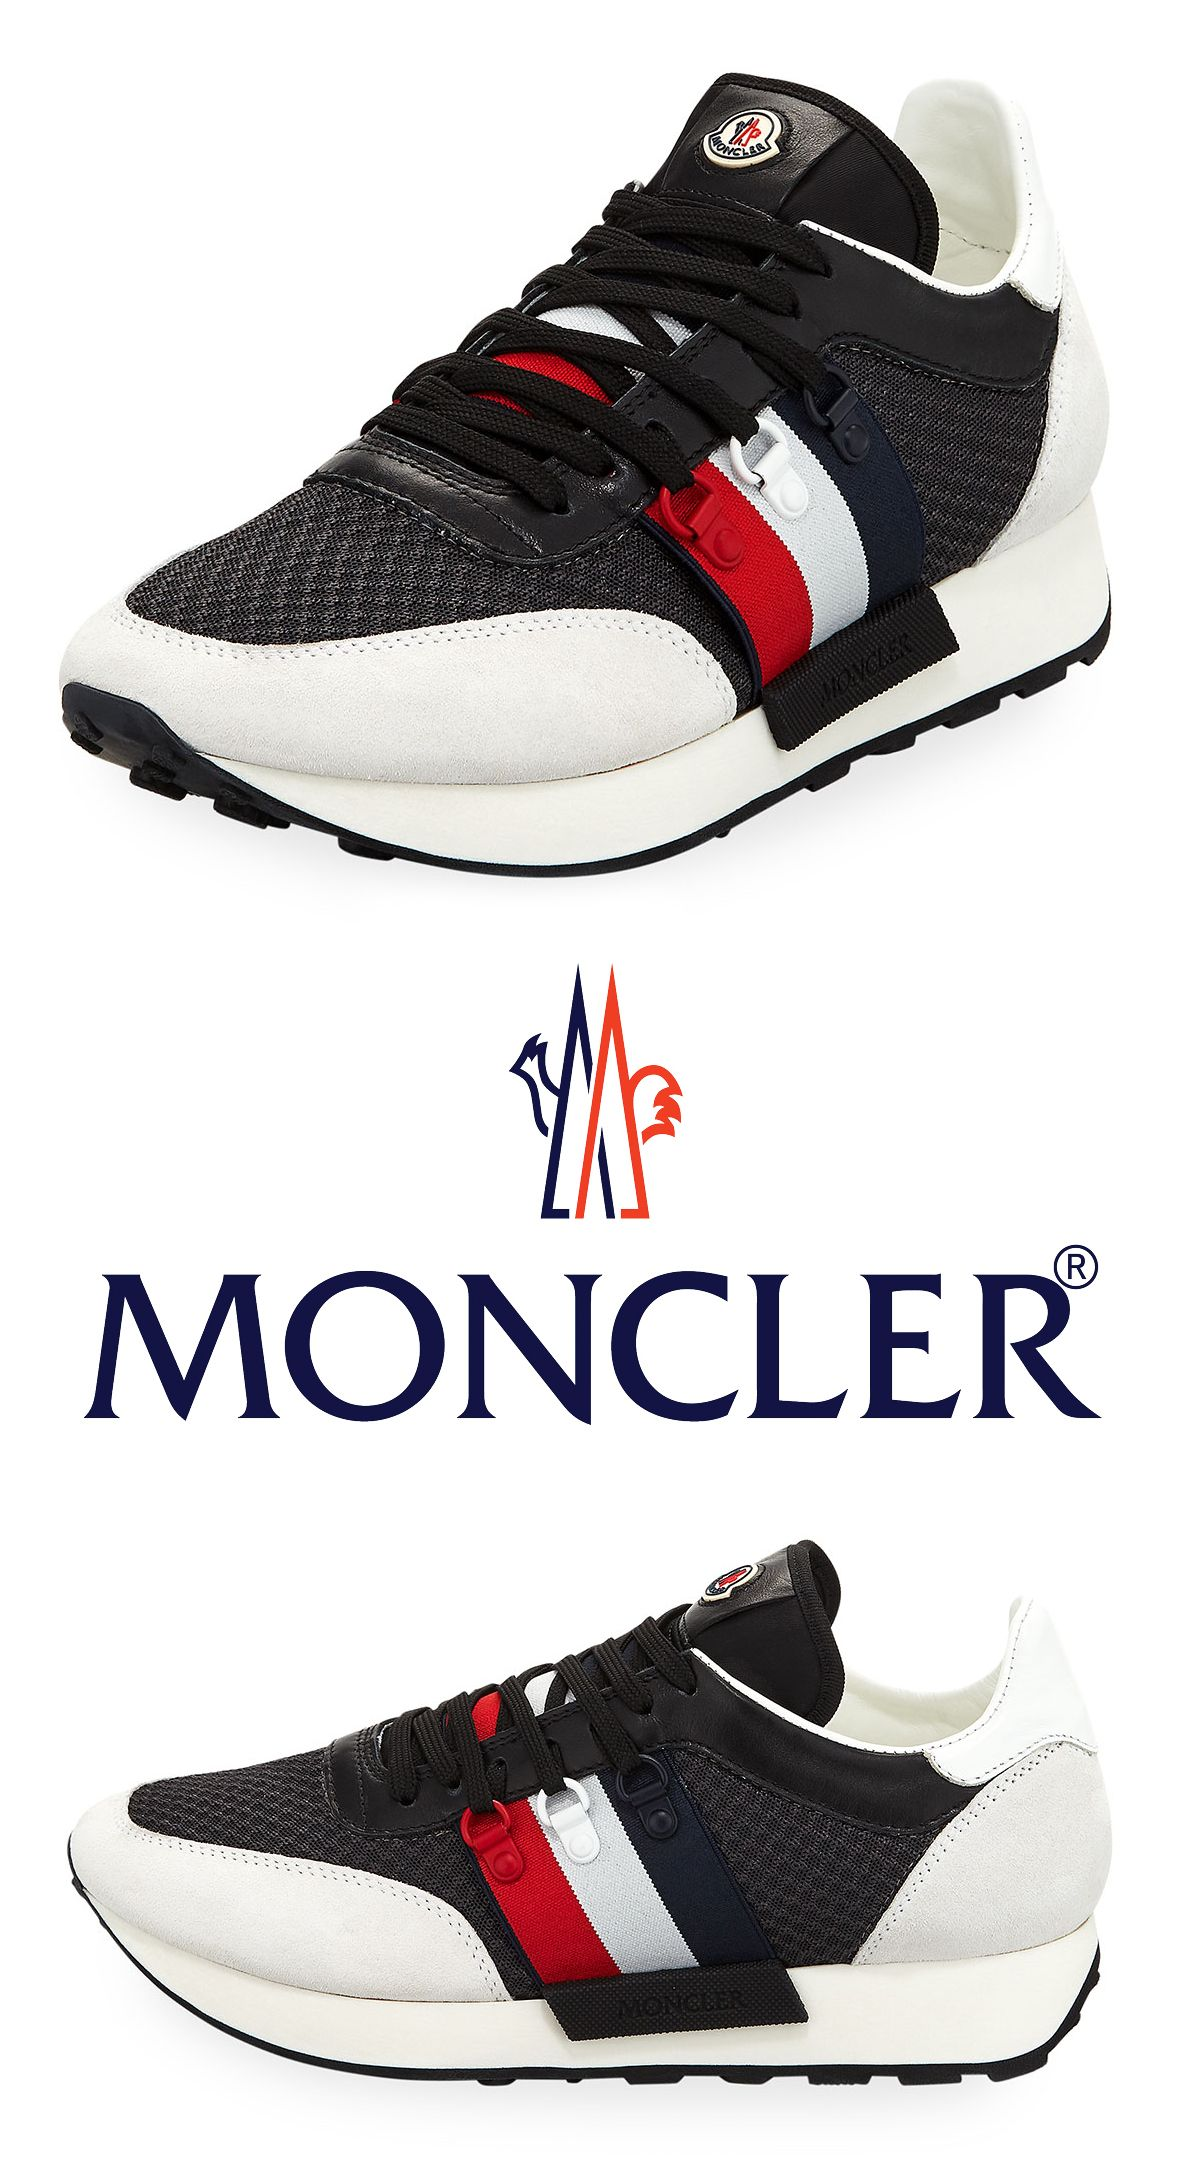 b29e207b7 Moncler New Horace Leather   Nylon Trainer Sneaker